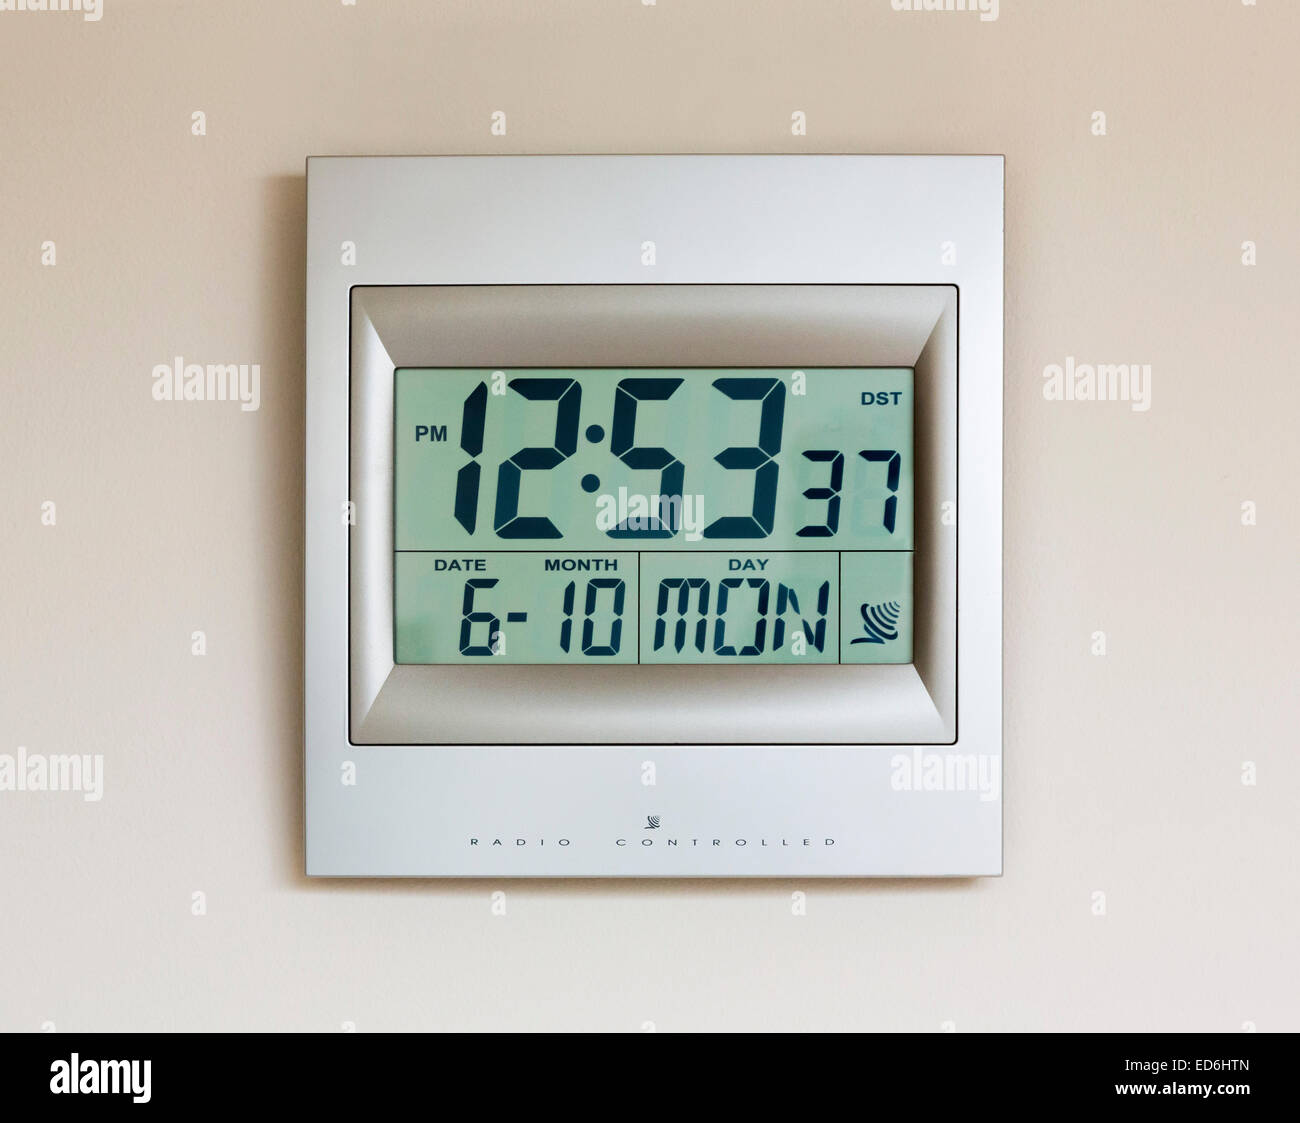 digital LCD clock that is radio controlled - Stock Image